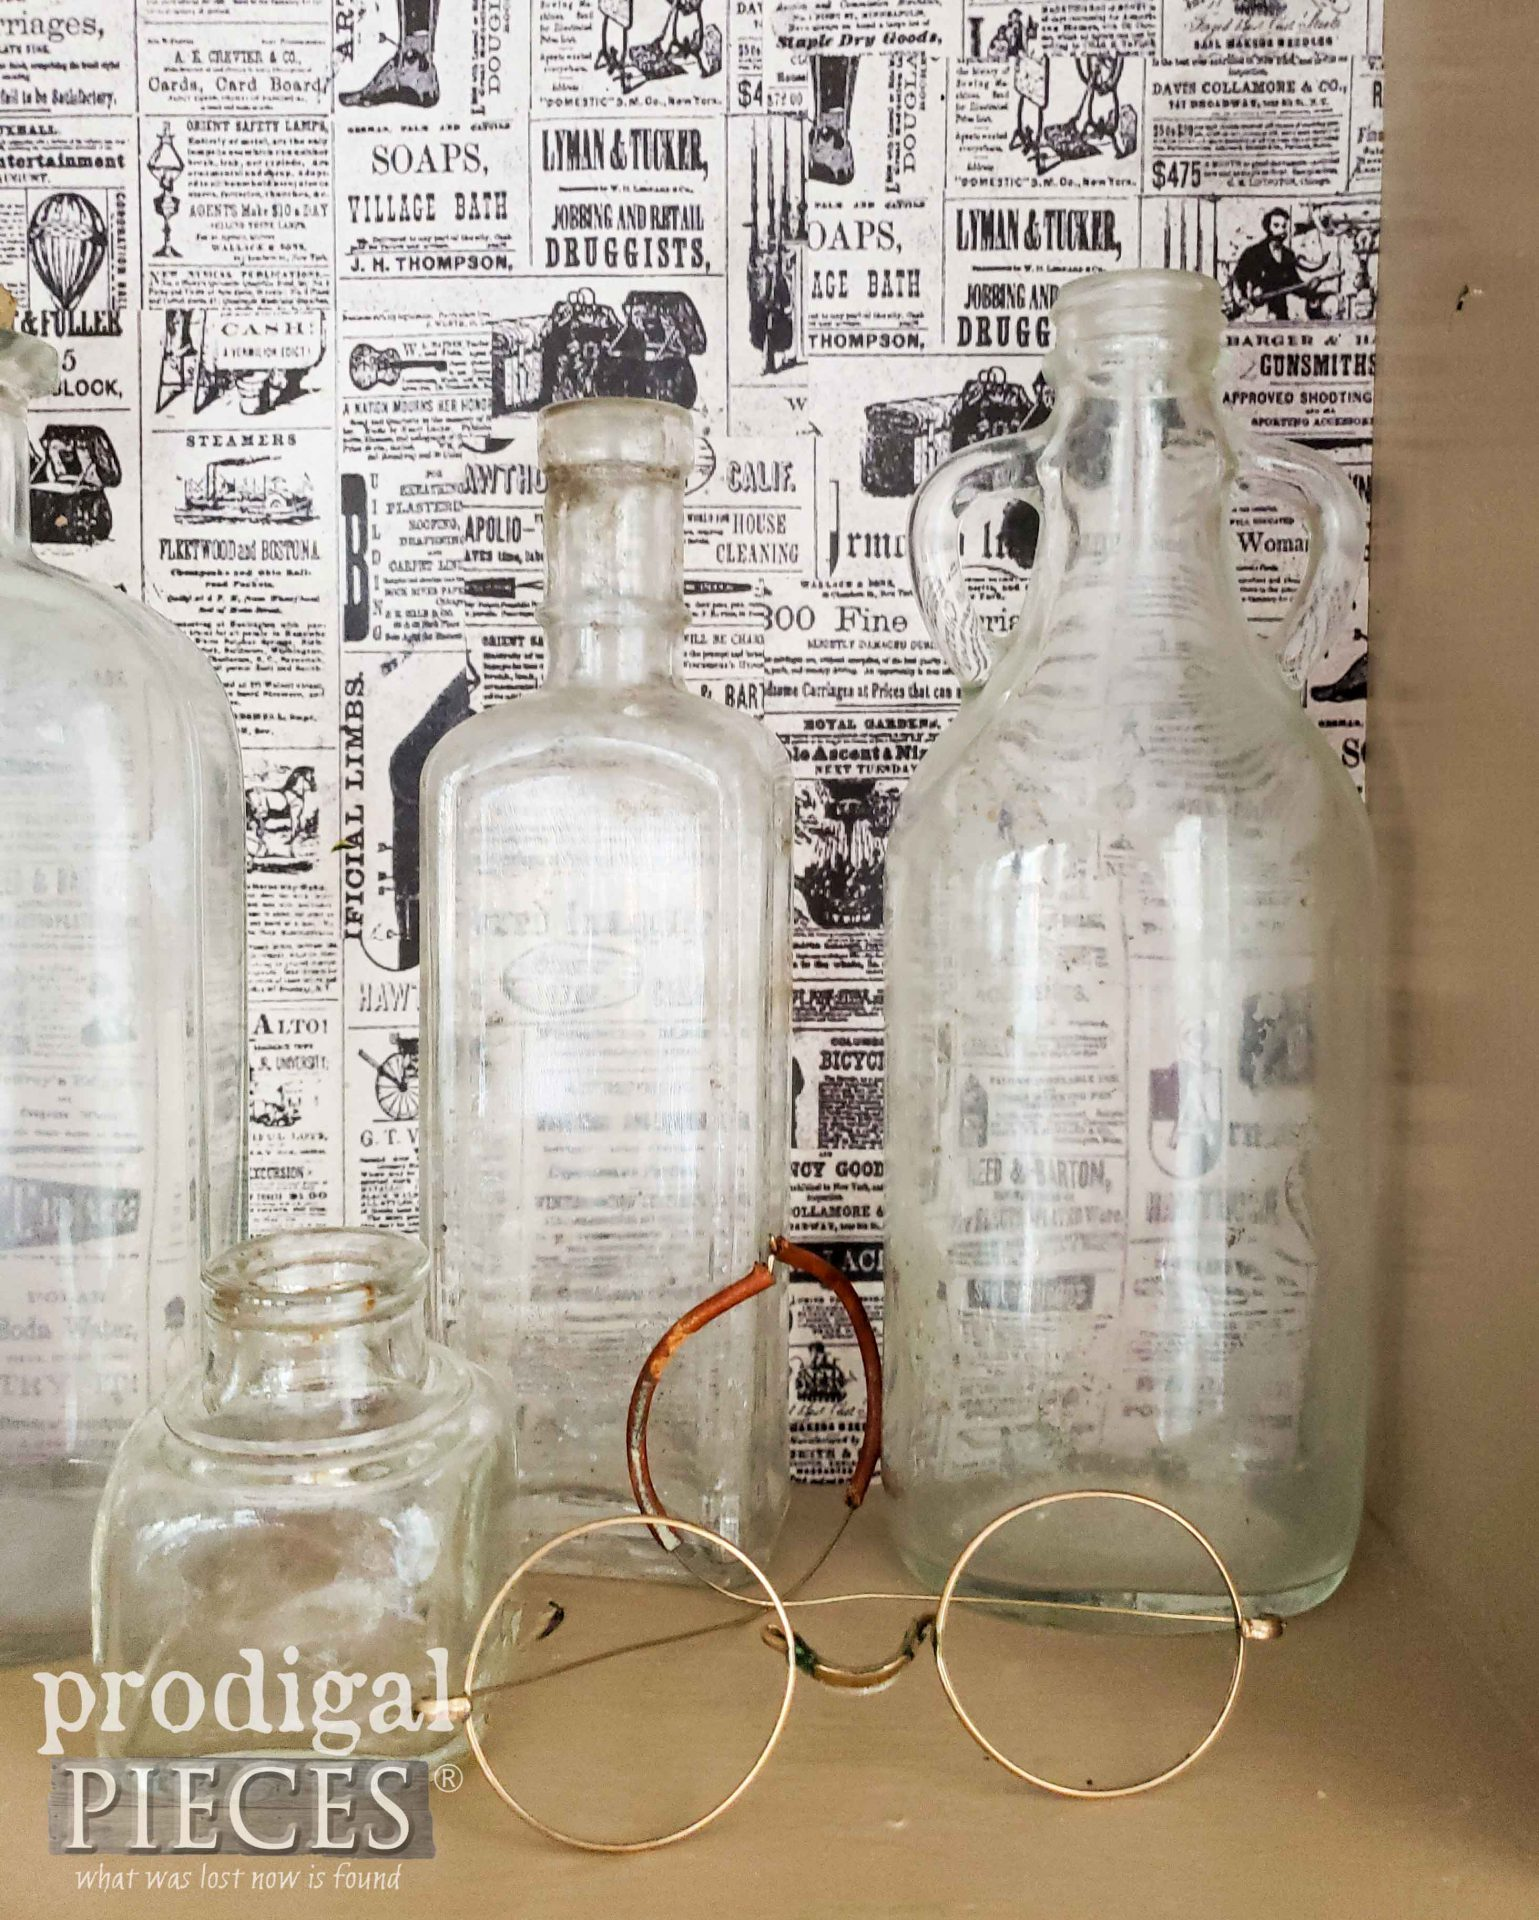 Decoupaged Vintage Apothecary Cabinet with Glasses by Larissa of Prodigal Pieces | prodigalpieces.com #prodigalpieces #farmhouse #diy #home #storage #homedecor